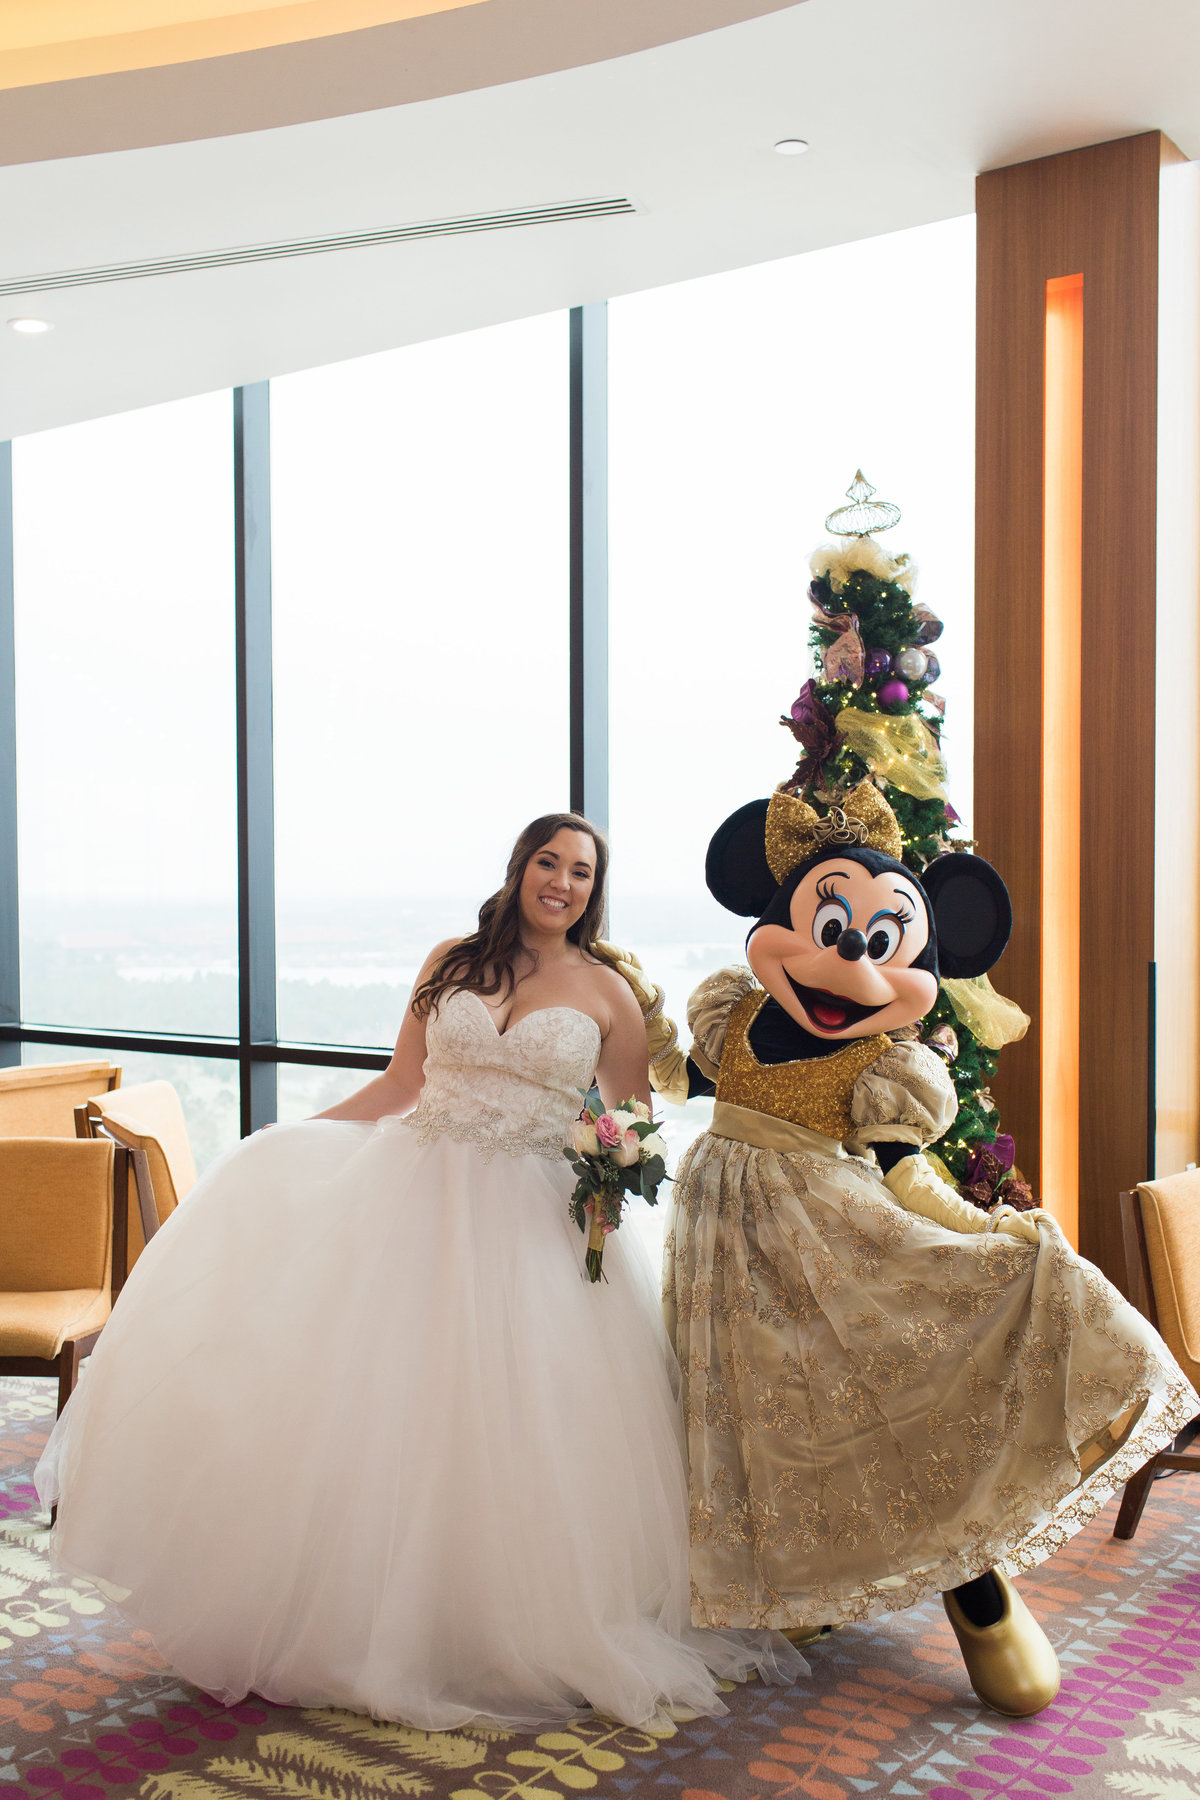 Jess Collins Photography Our Disney Wedding 2017 (608 of 668)